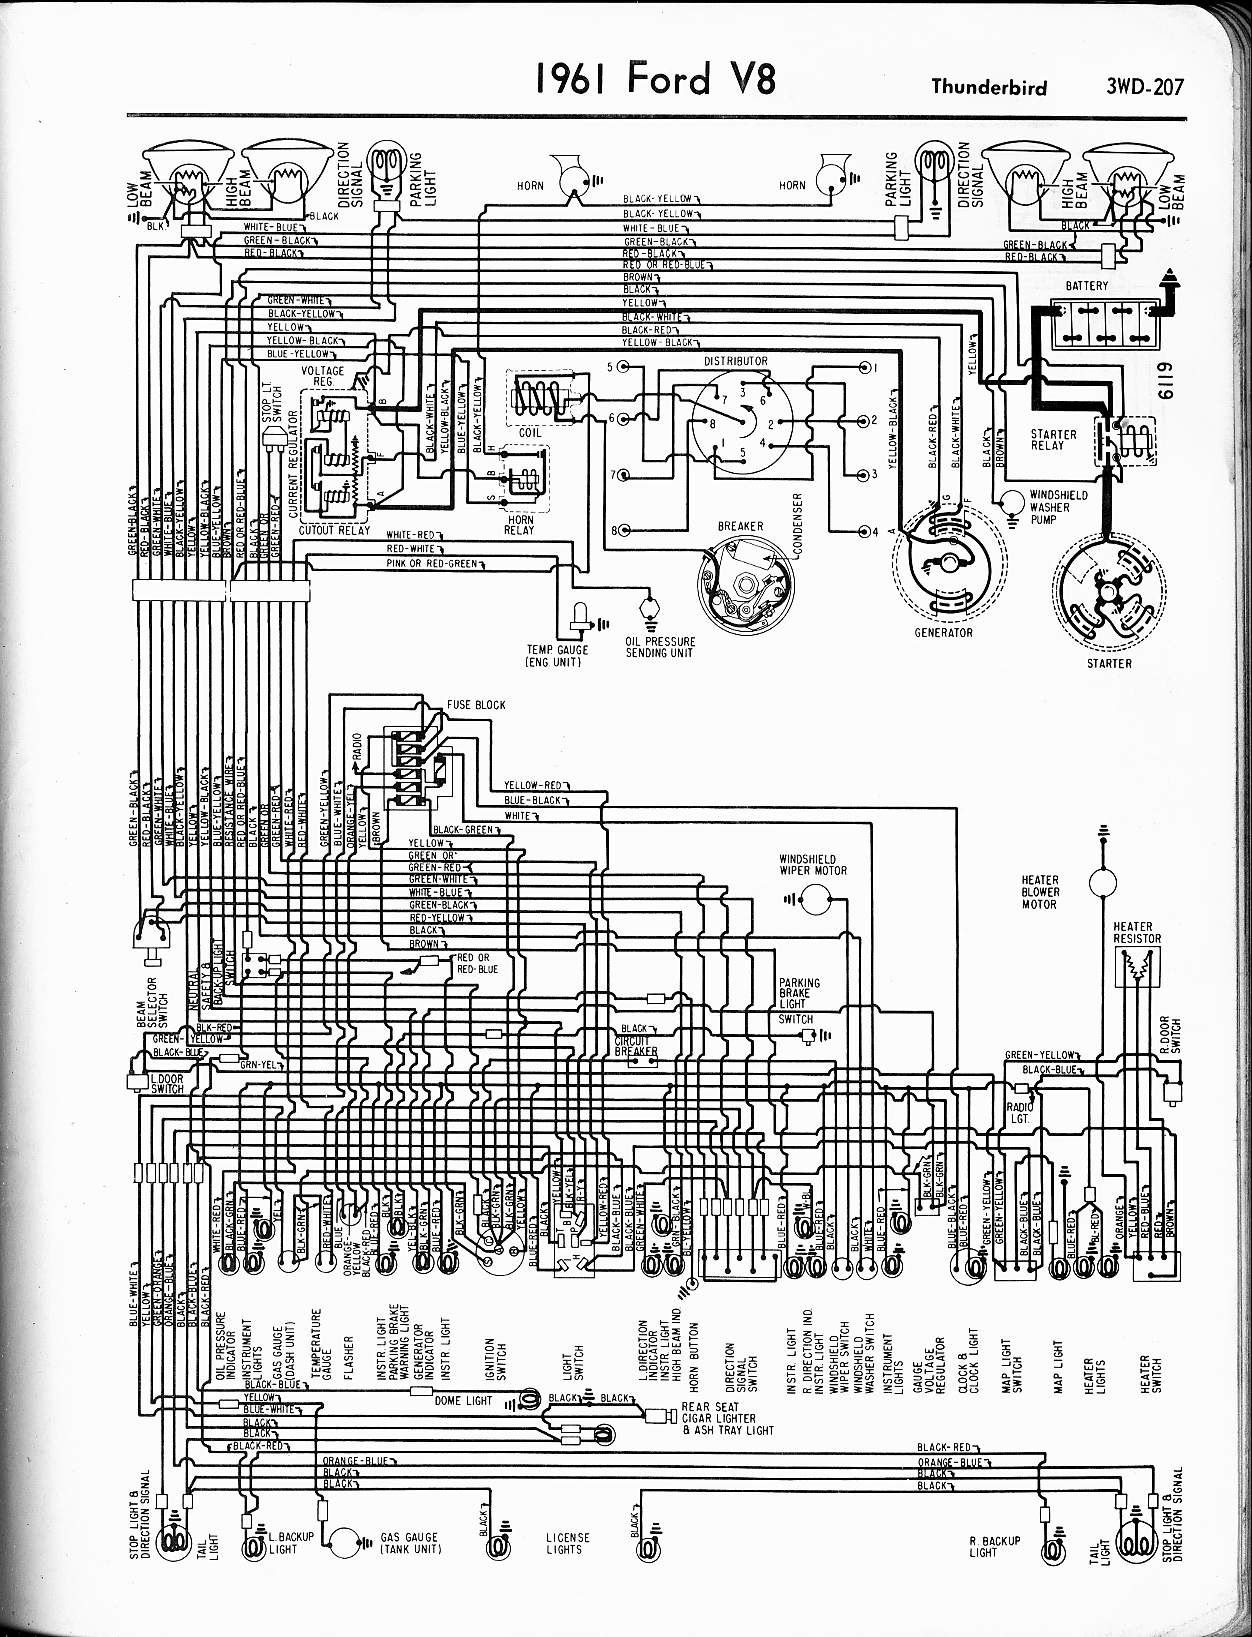 57 65 ford wiring diagrams 1978 Ford Truck Wiring Diagram 1961 thunderbird